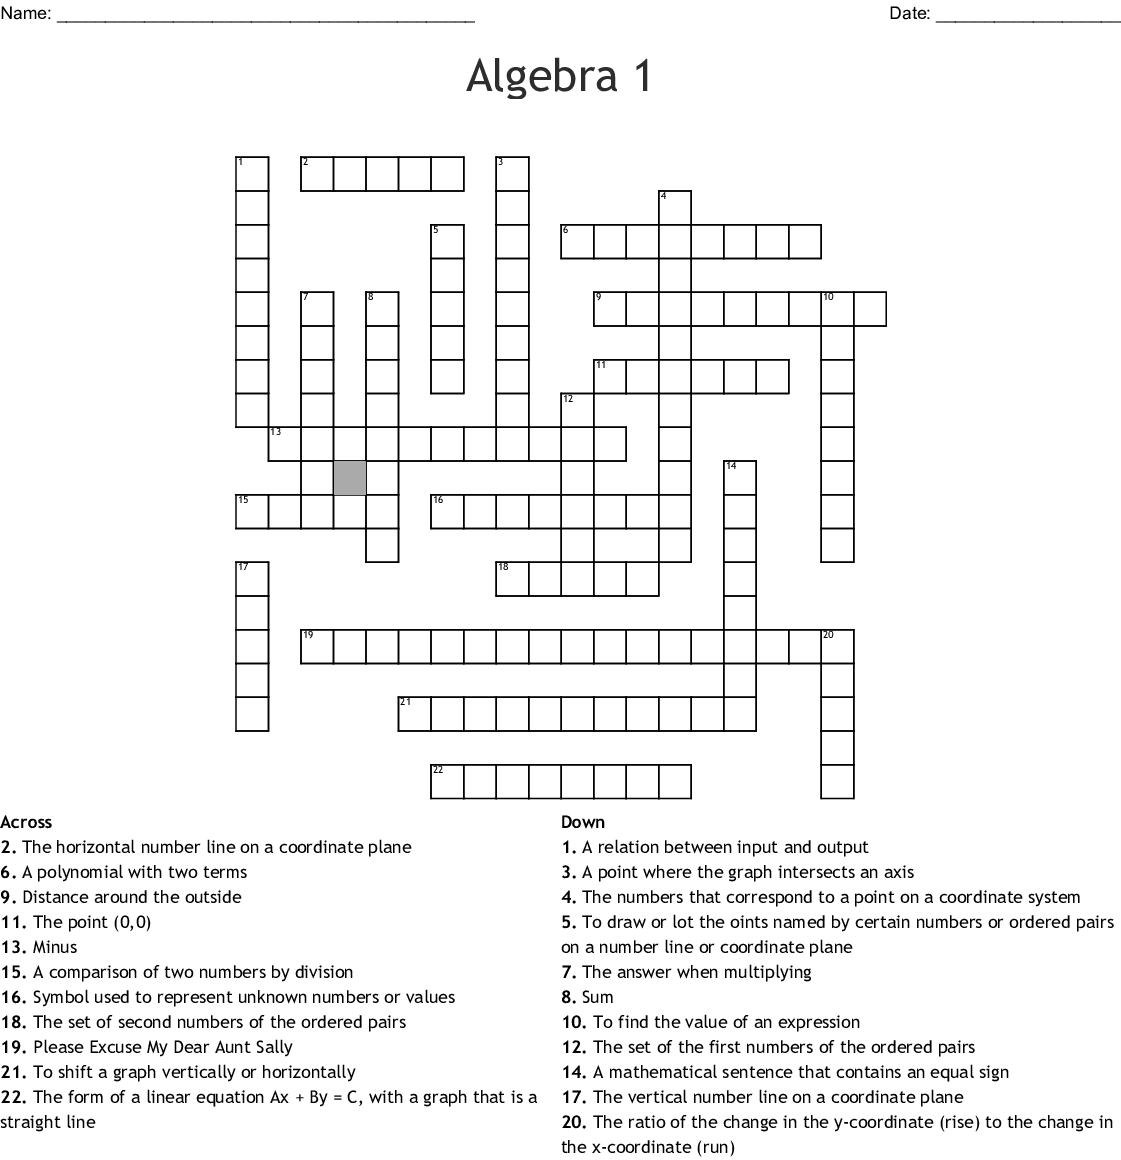 Algebra 1 Crossword - Wordmint - Algebra Crossword Puzzle Printable